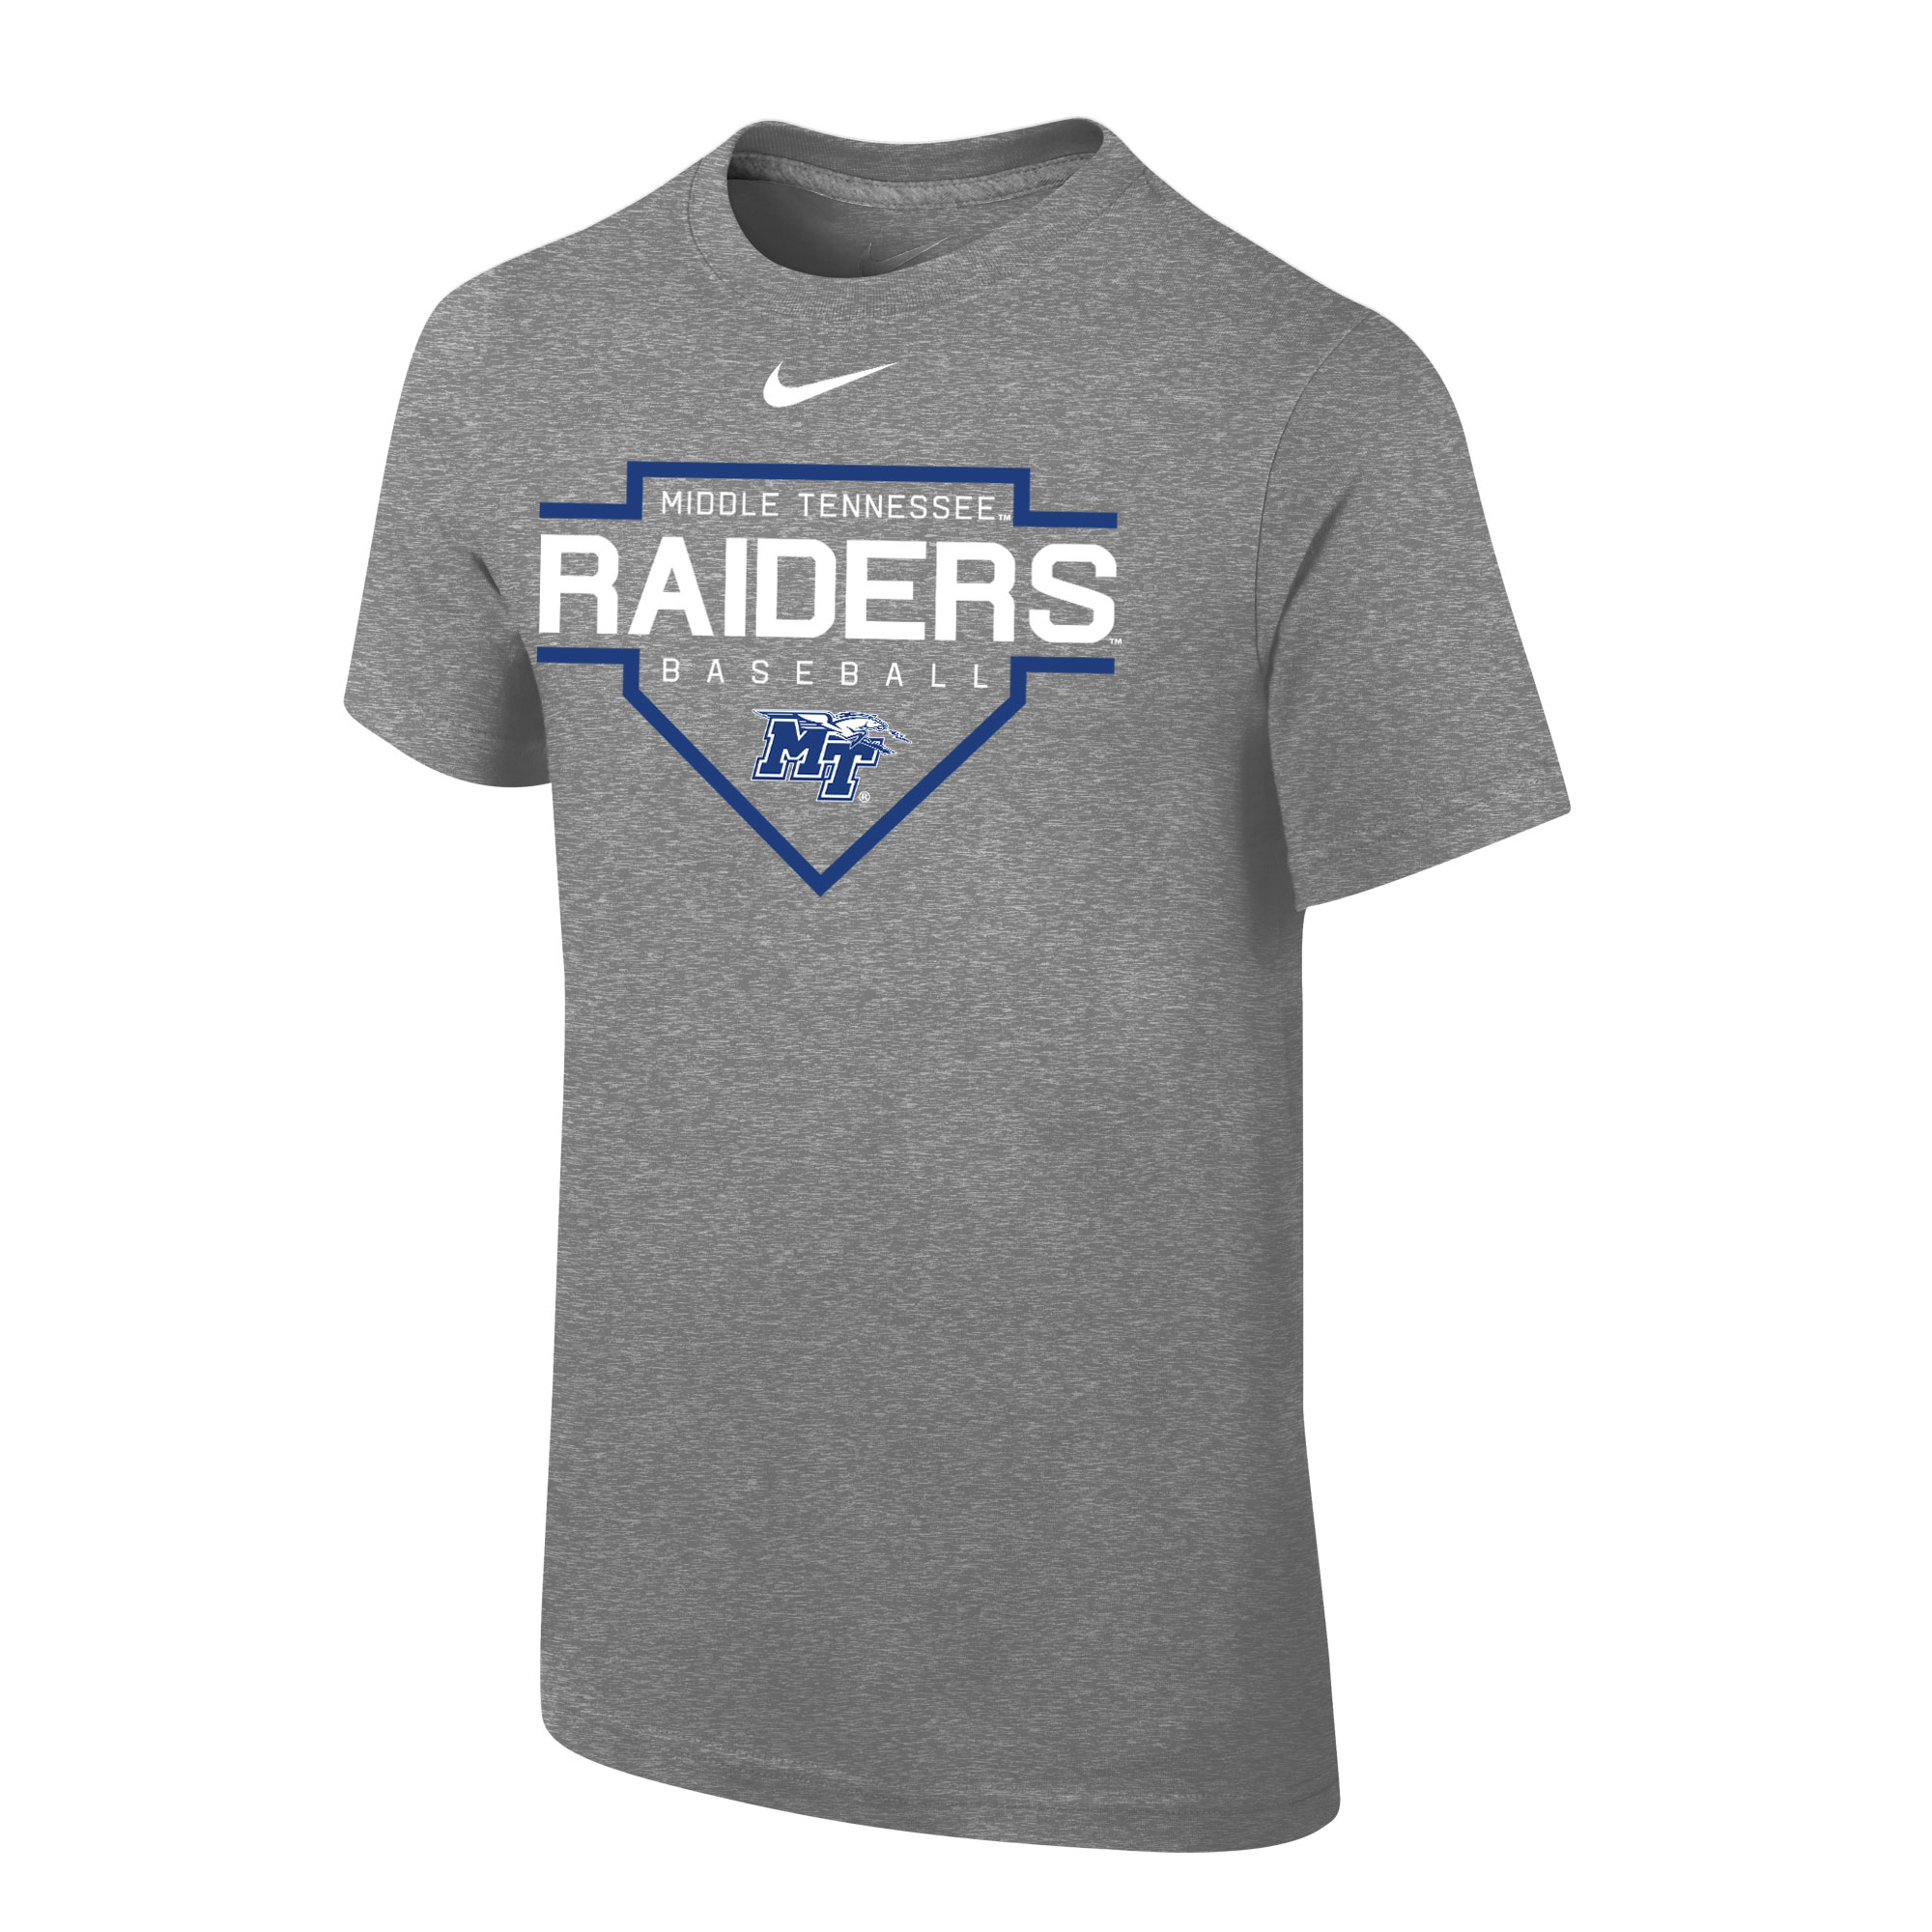 Youth Middle Tennessee Raiders Baseball Nike® Core Shirt